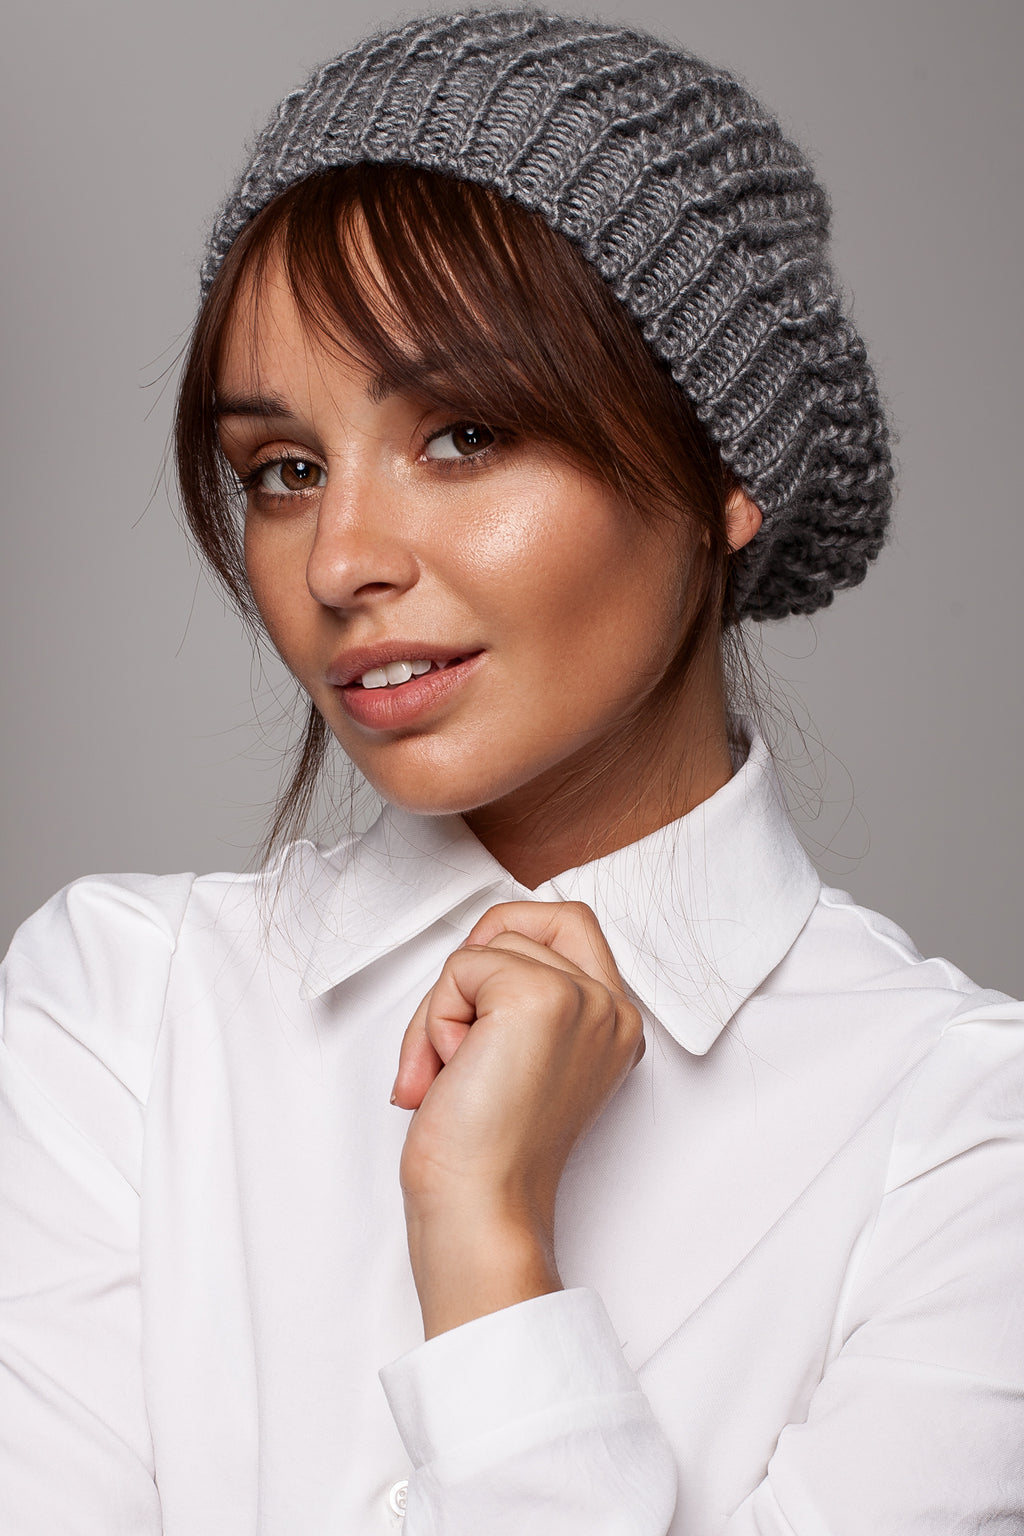 Graphite Knit Beret - So Chic Boutique